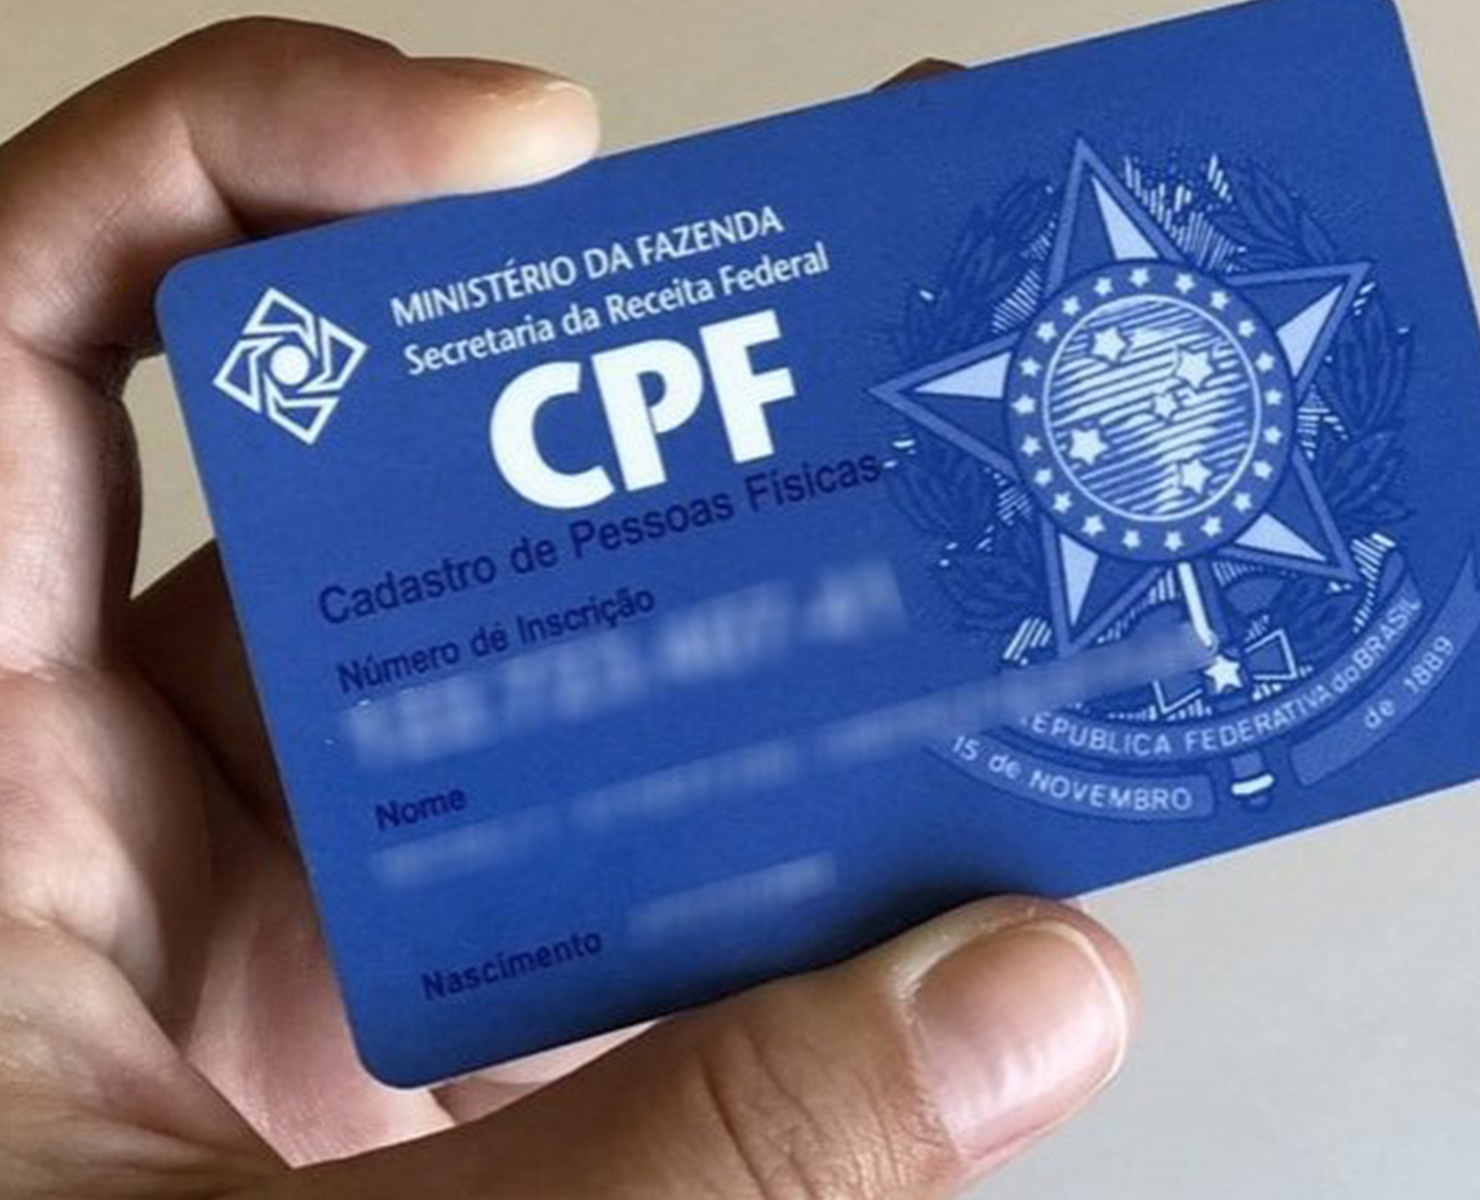 CPF: COMO REGULARIZAR O DOCUMENTO SEM SAIR DE CASA